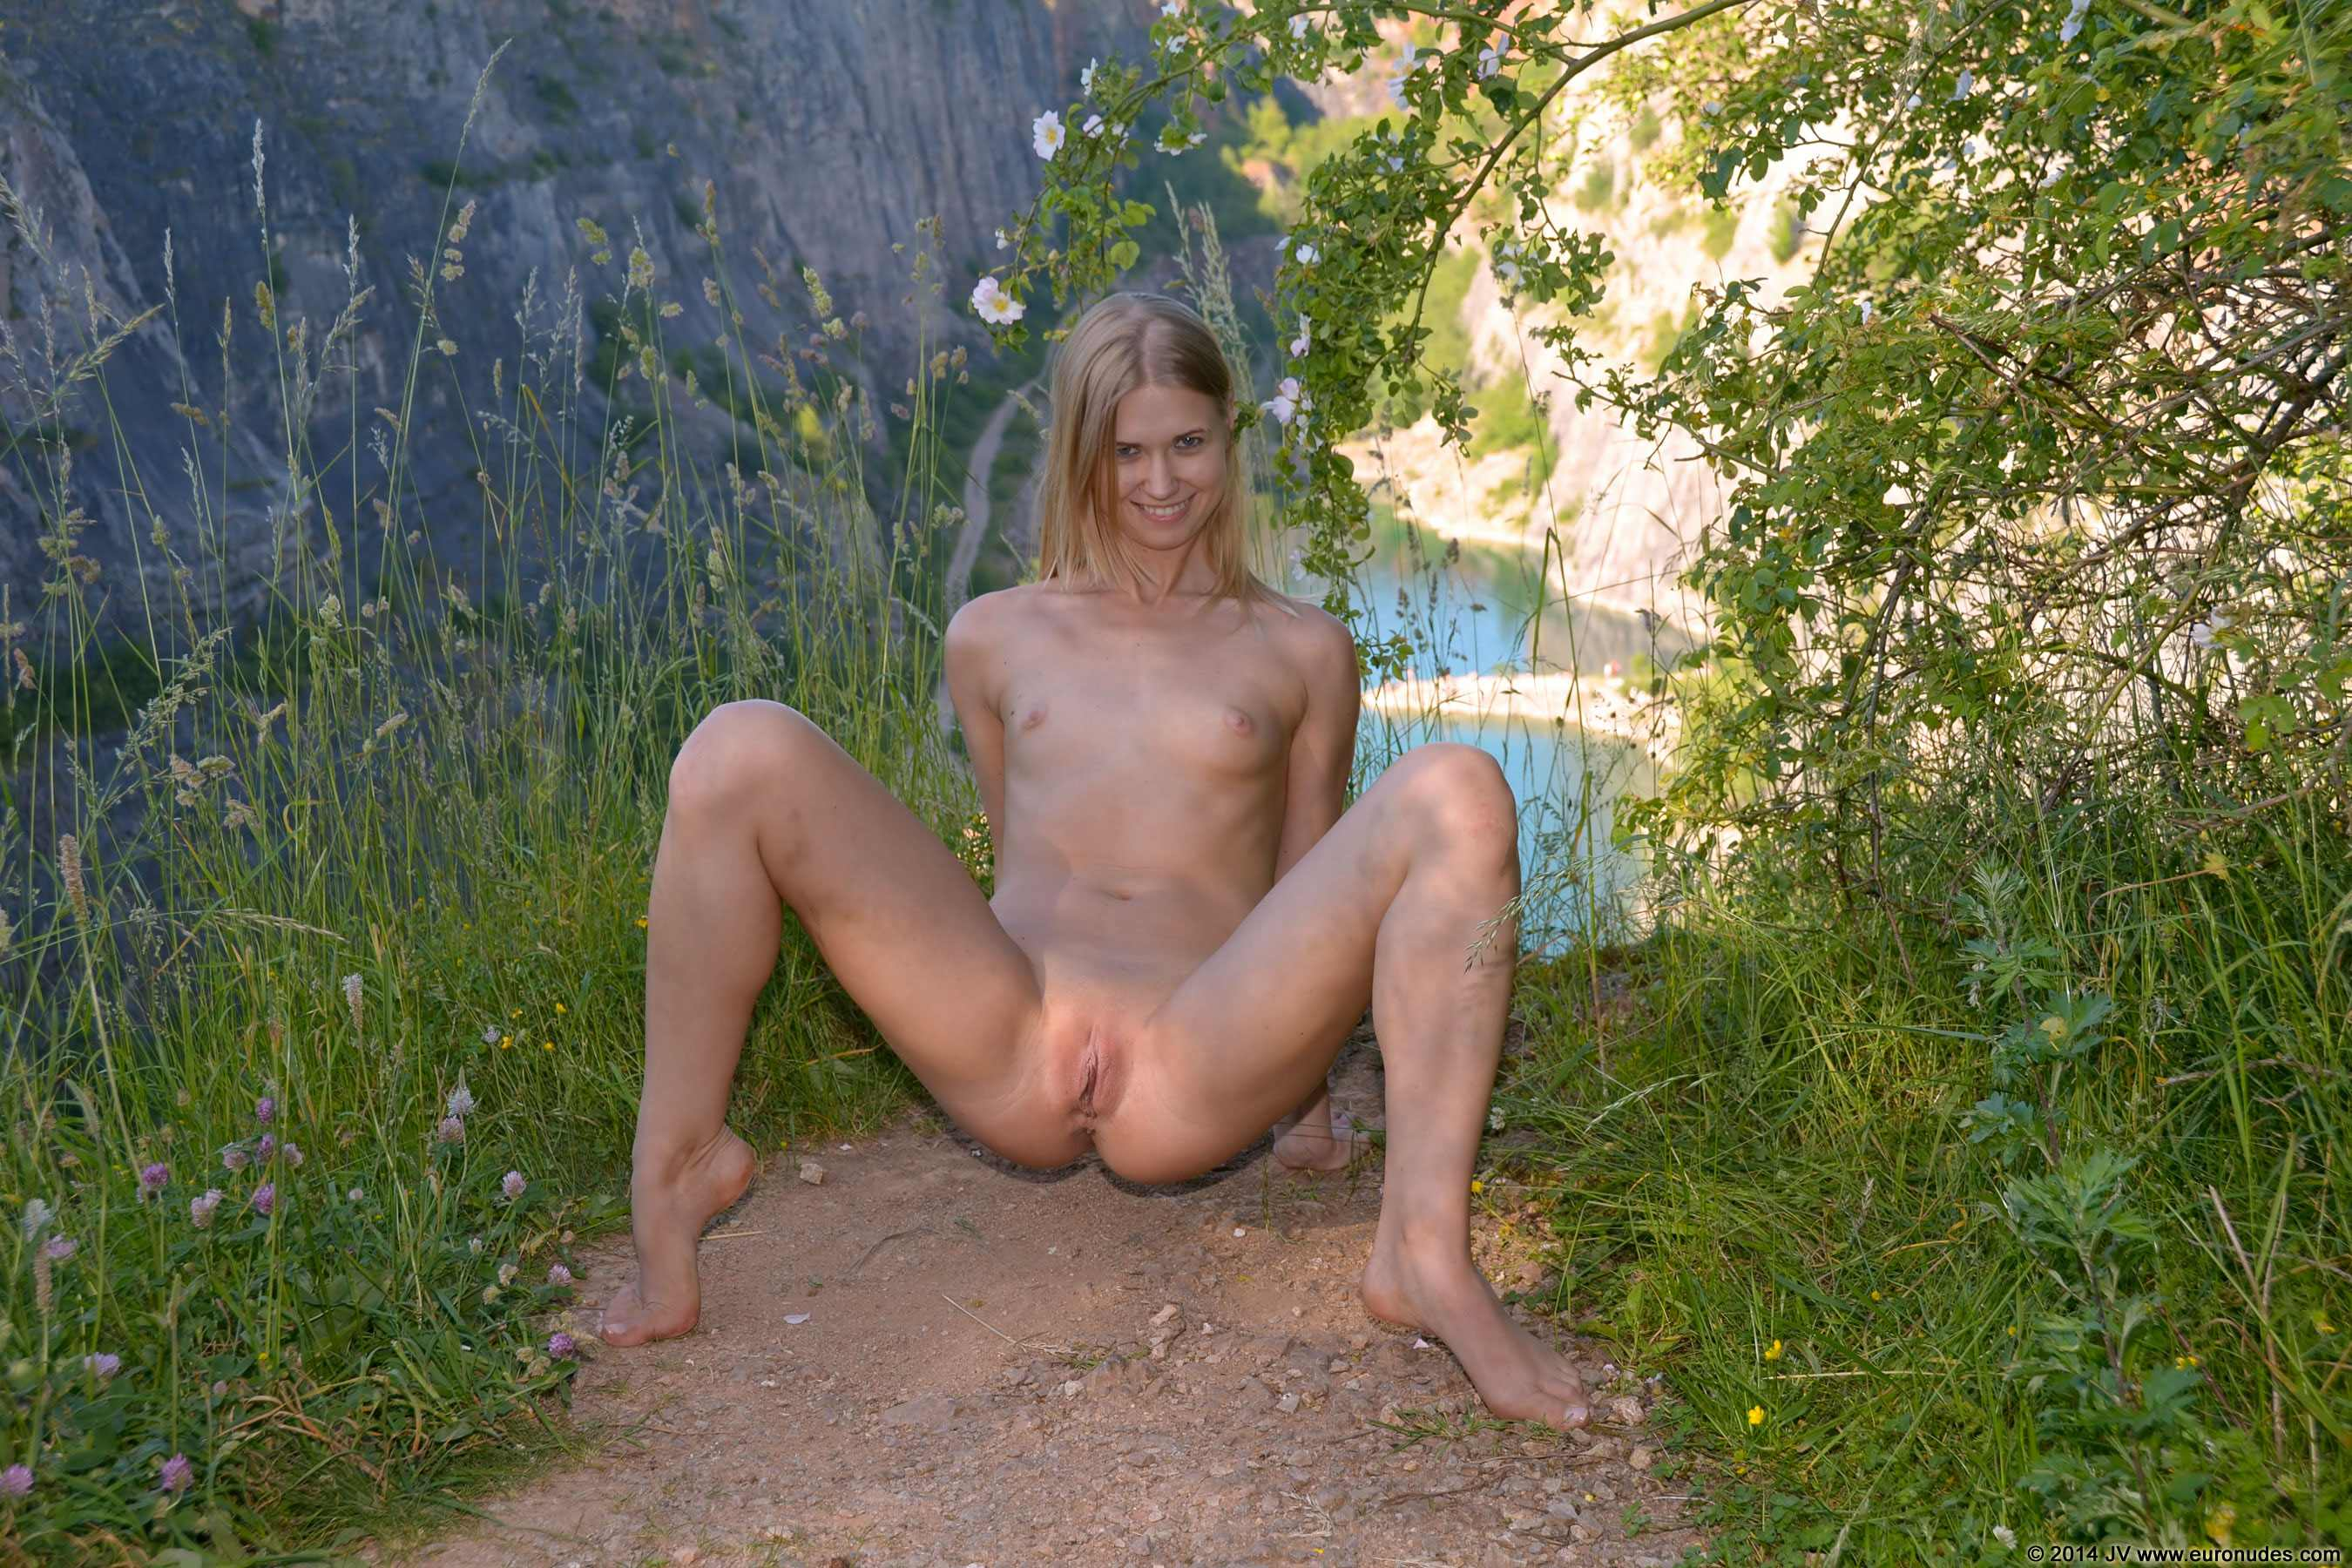 girls nude Hiking